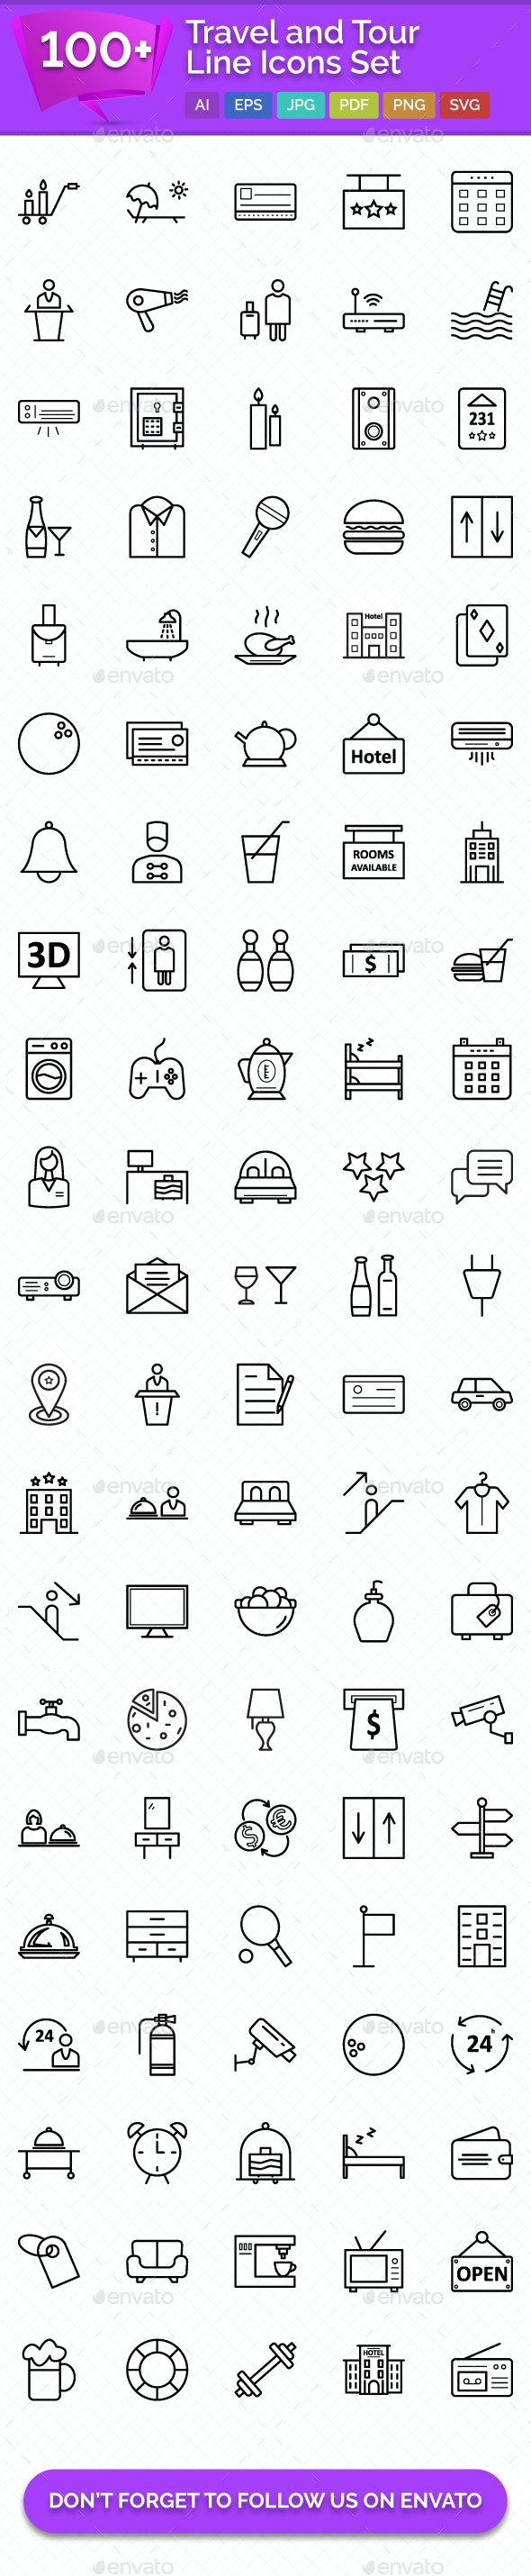 100+ Travel and Tour Line Icons Set - Icons